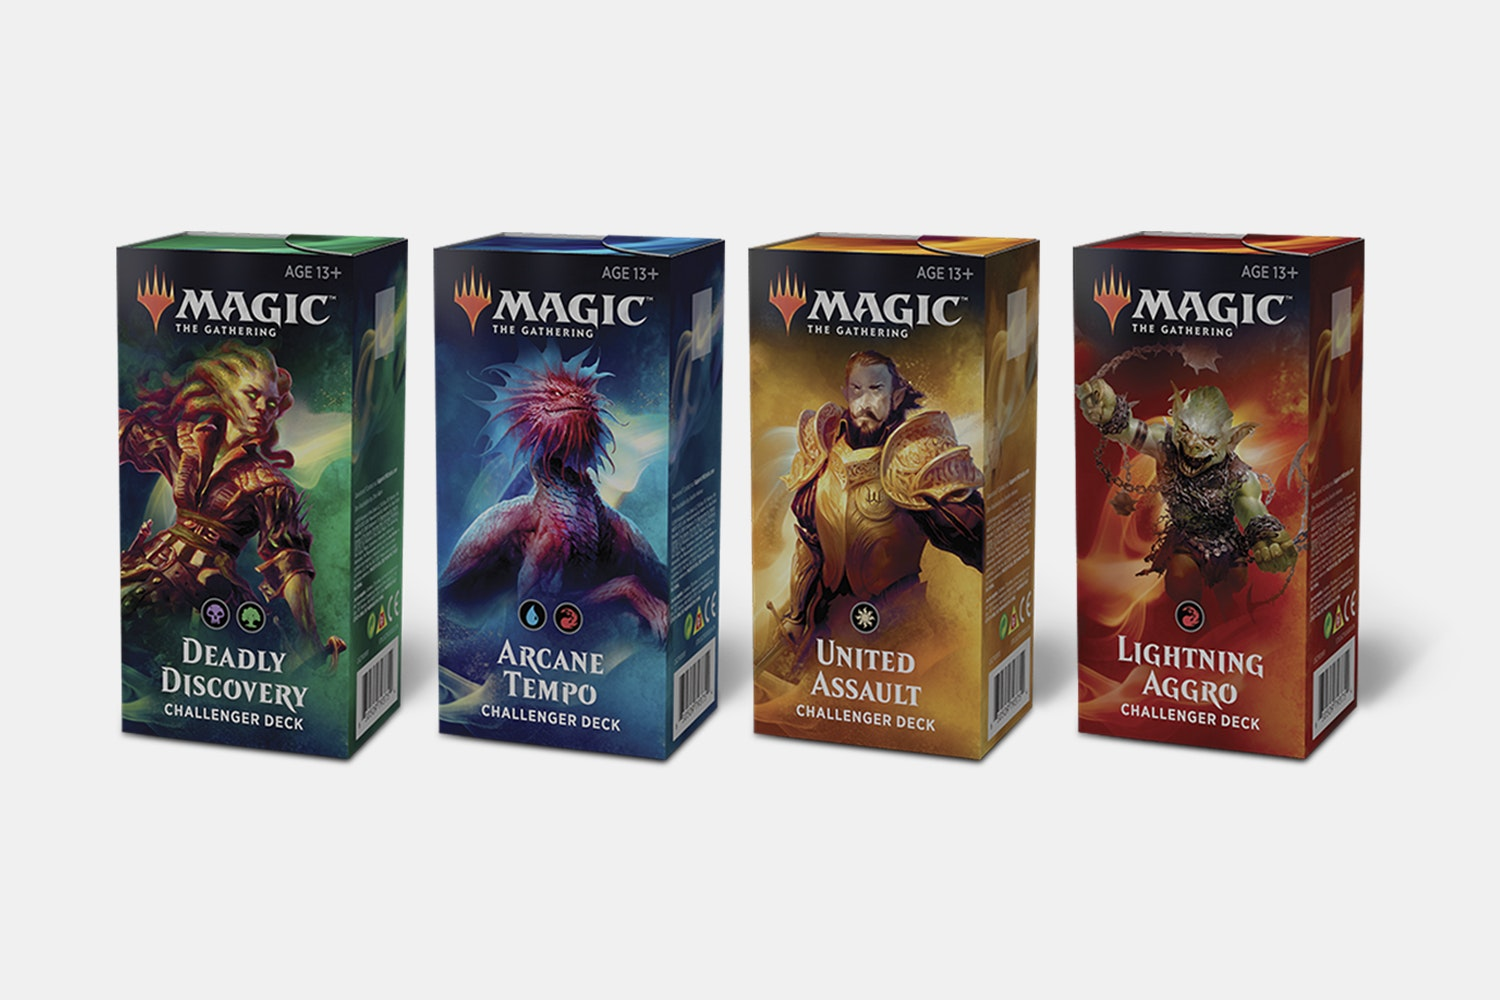 Magic 2019 Challenger Deck Arcane Tempo 75 Cards Including Arclight Phoenix!